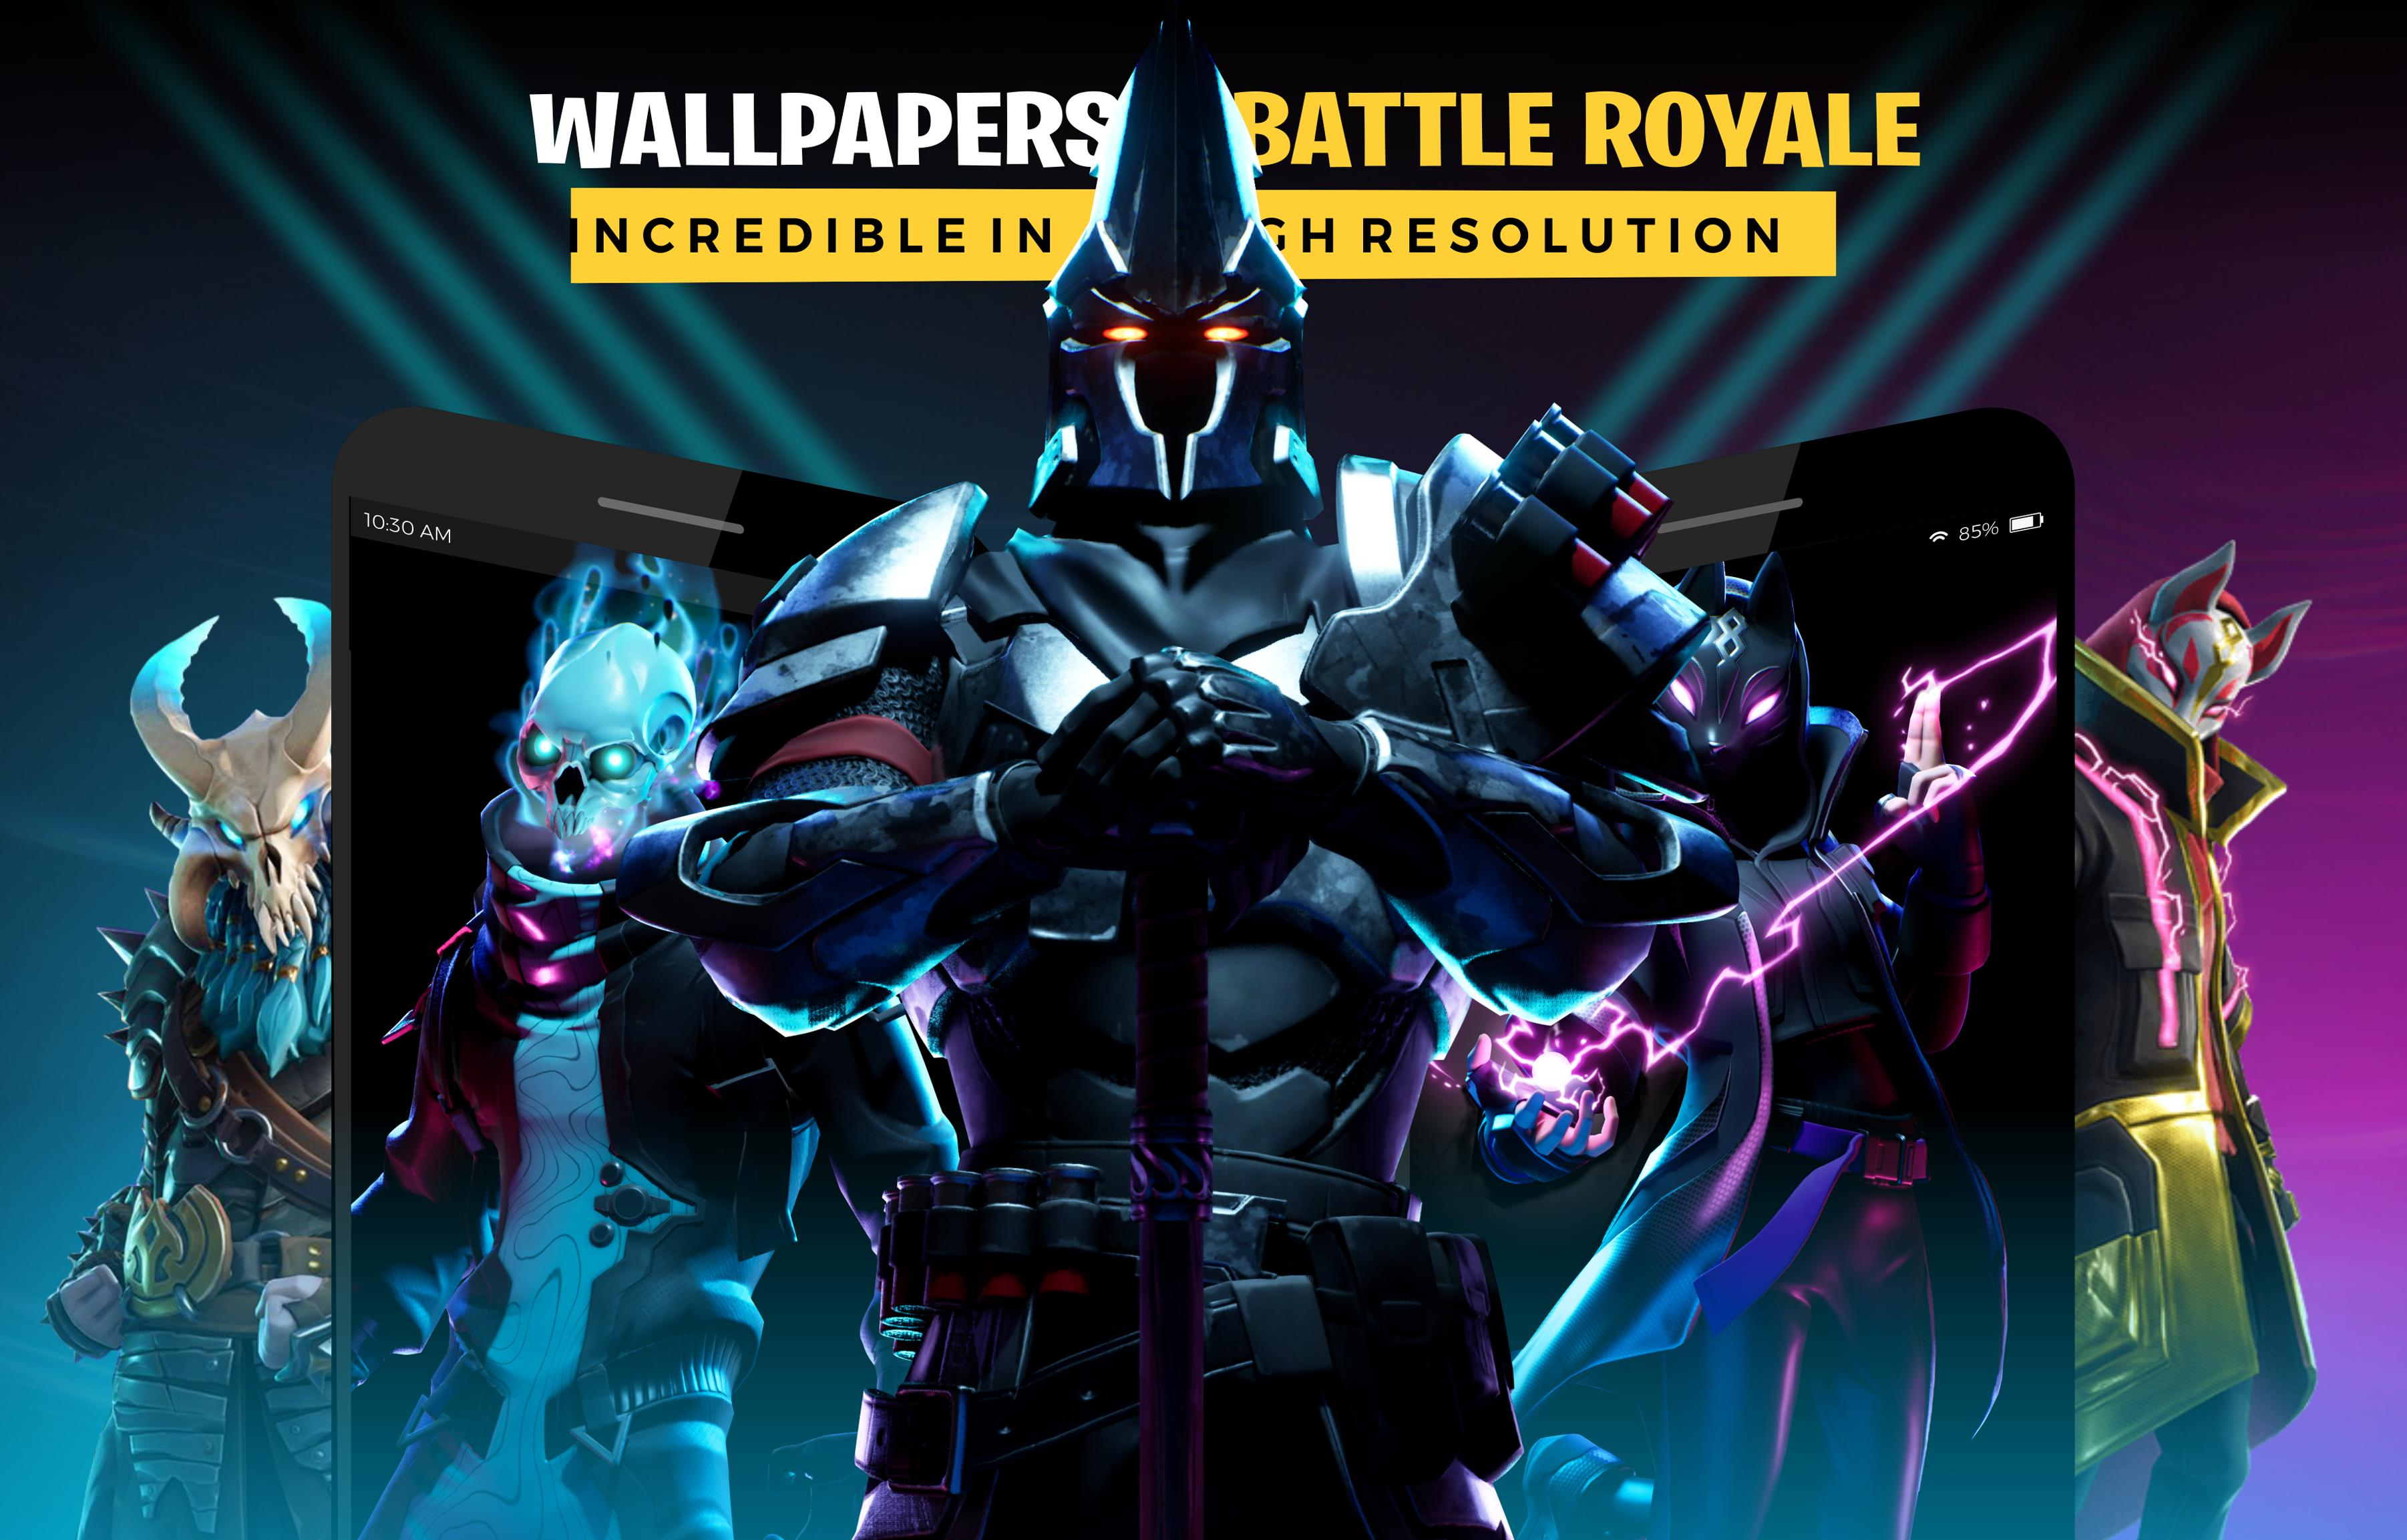 Battle Royale Wallpaper Hd 4k For Android Apk Download